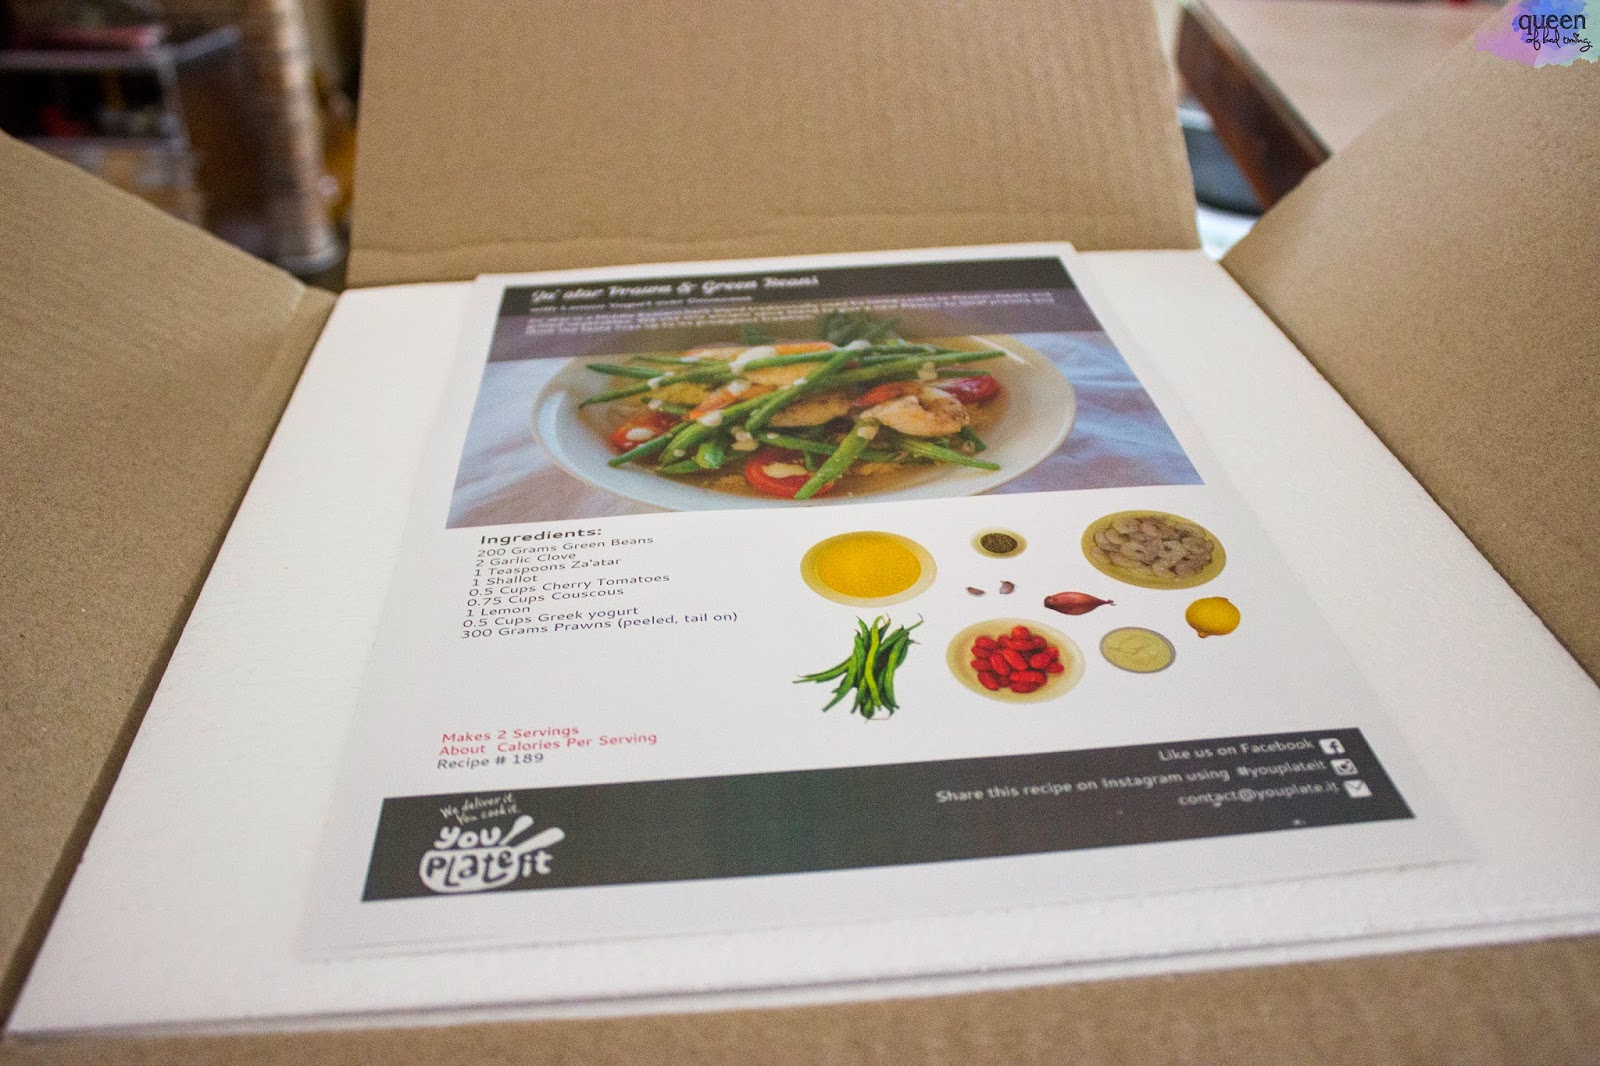 Meal time made easy with you plate it perth queen of bad timing at 4pm sunday my delivery of ingredients arrived encased in a styrofoam box with ice packs diligently keeping the produce cool and fresh the two meals are forumfinder Gallery